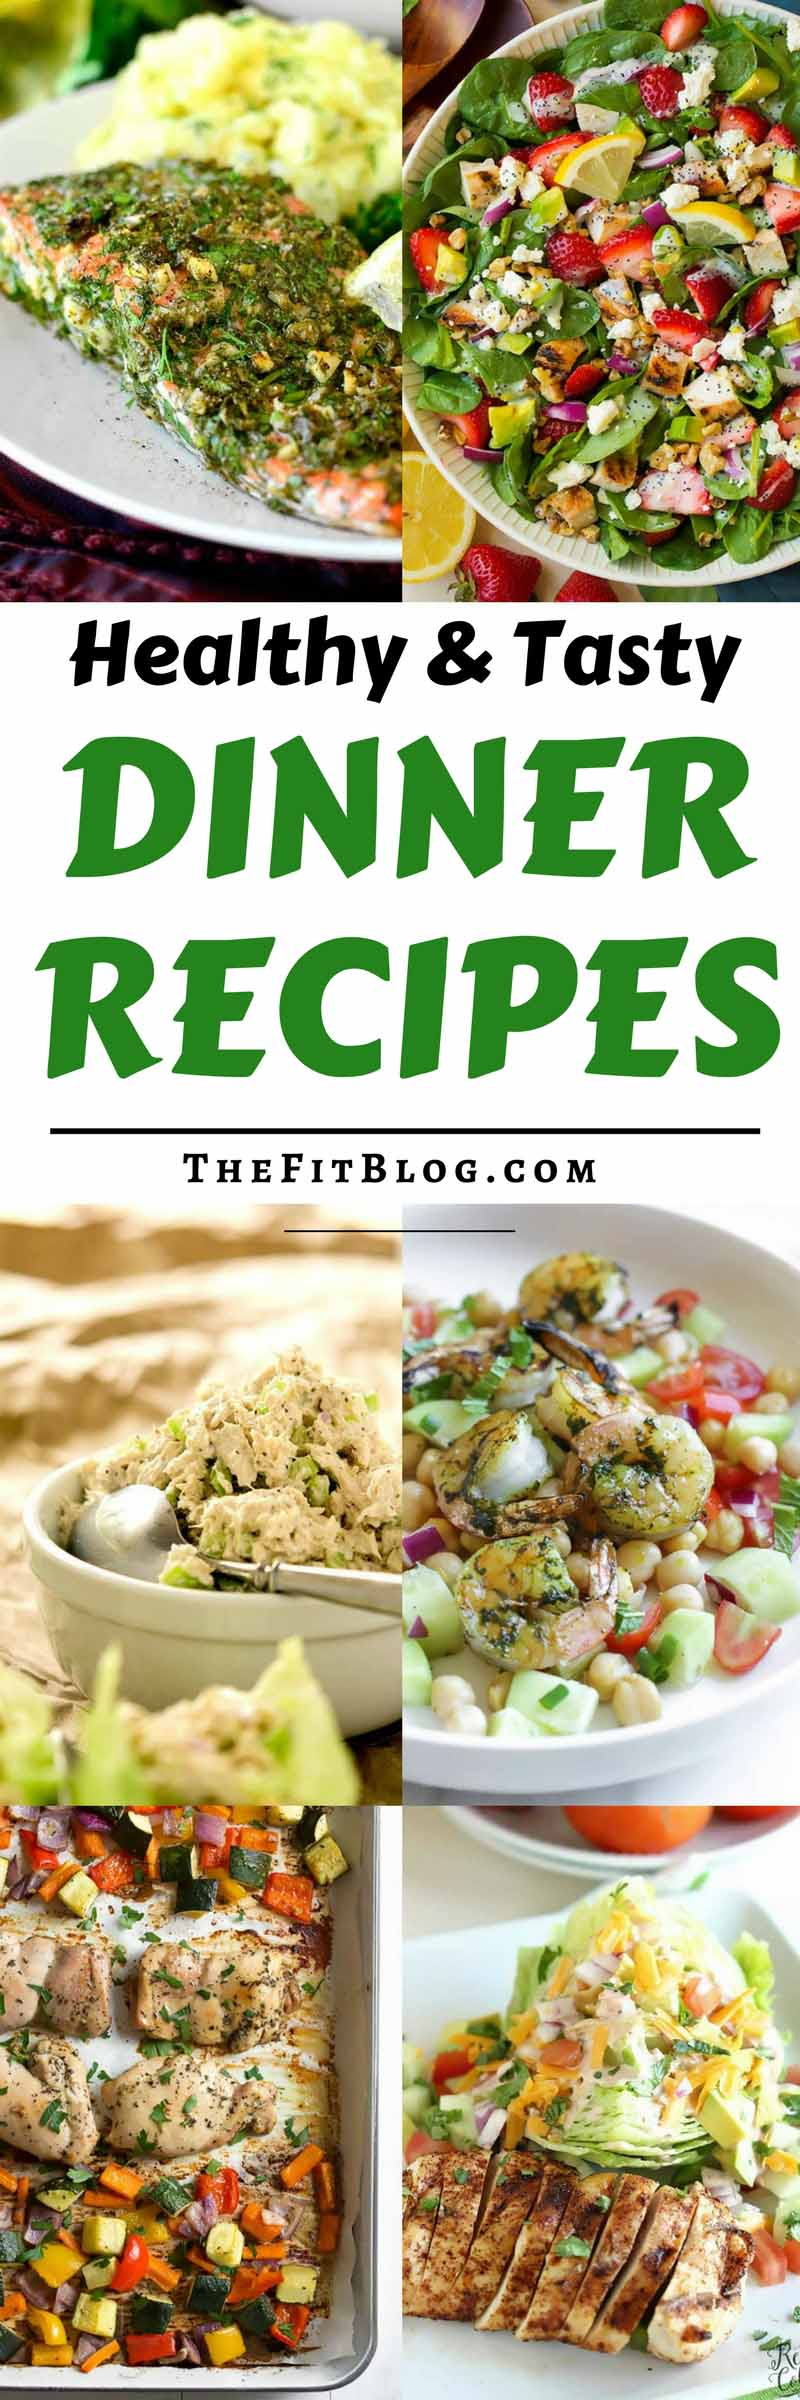 Some of these recipes are my own and some are from food blogs I follow, but all of them are healthy, tasty, and great for people with diabetes  | high protein | low carb | sugar free | gluten free | diabetes friendly |